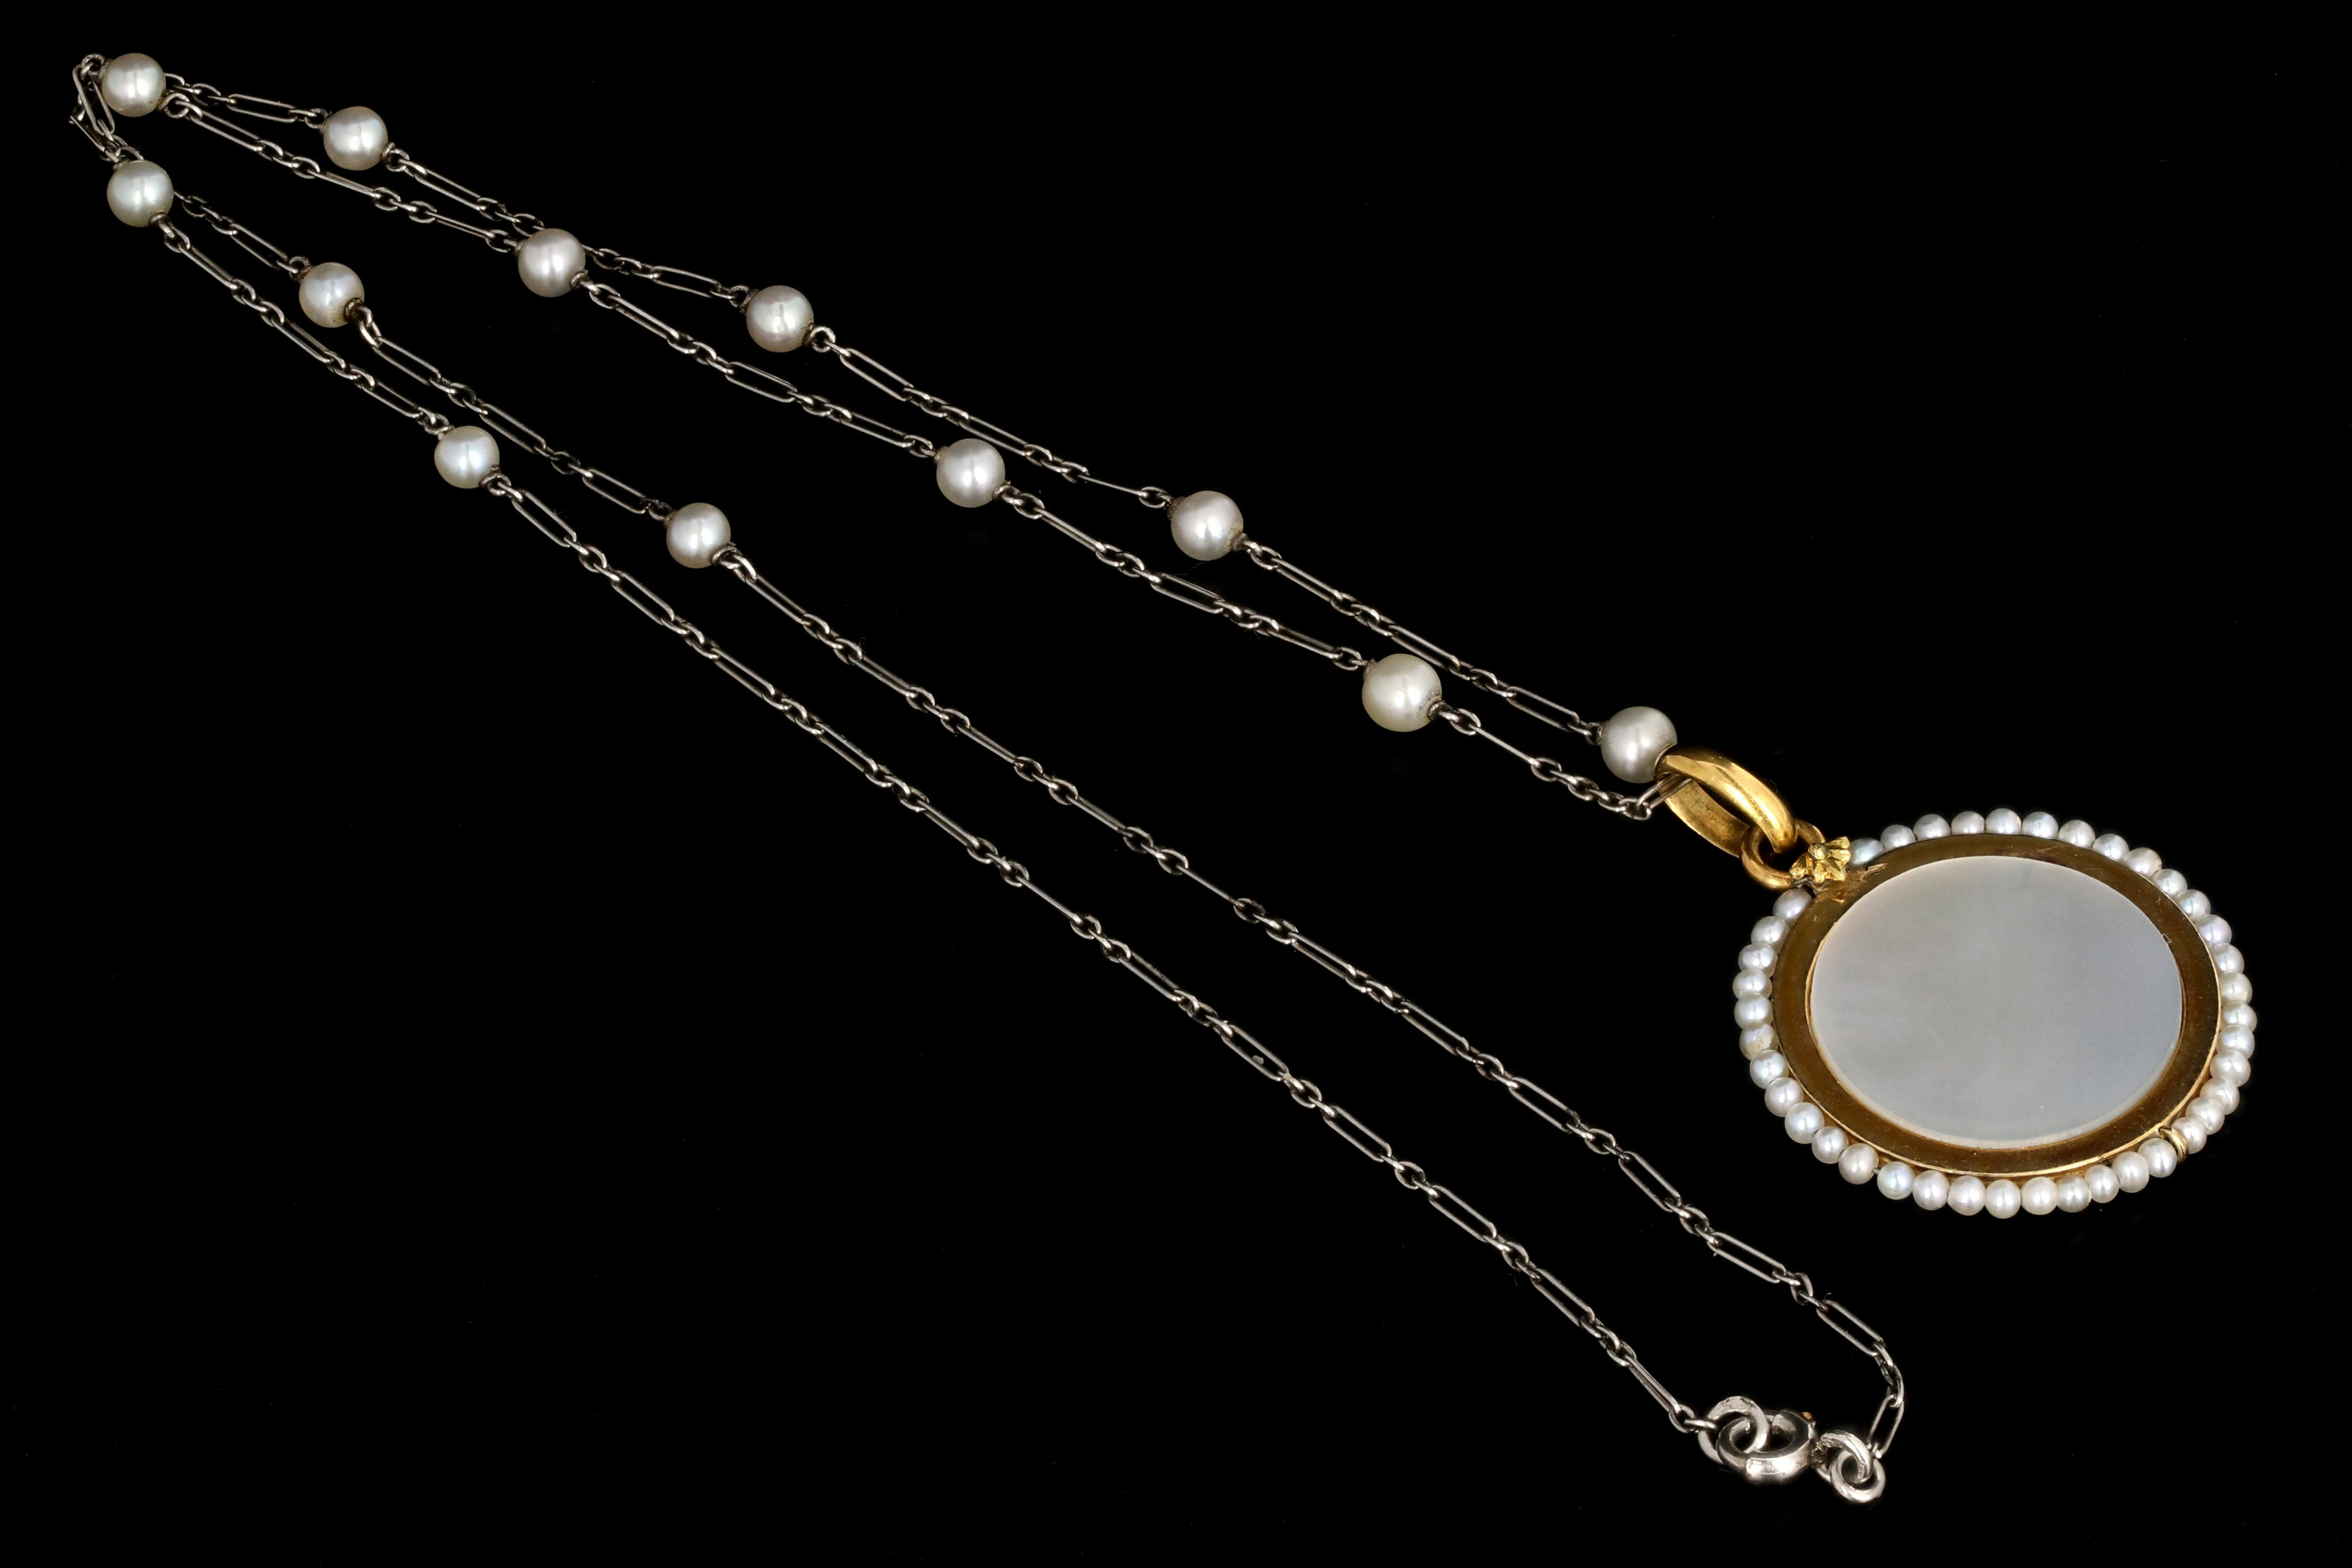 Antique English 18K Yellow Gold, Enamel, and Mother of Pearl Religious Pendant Necklace